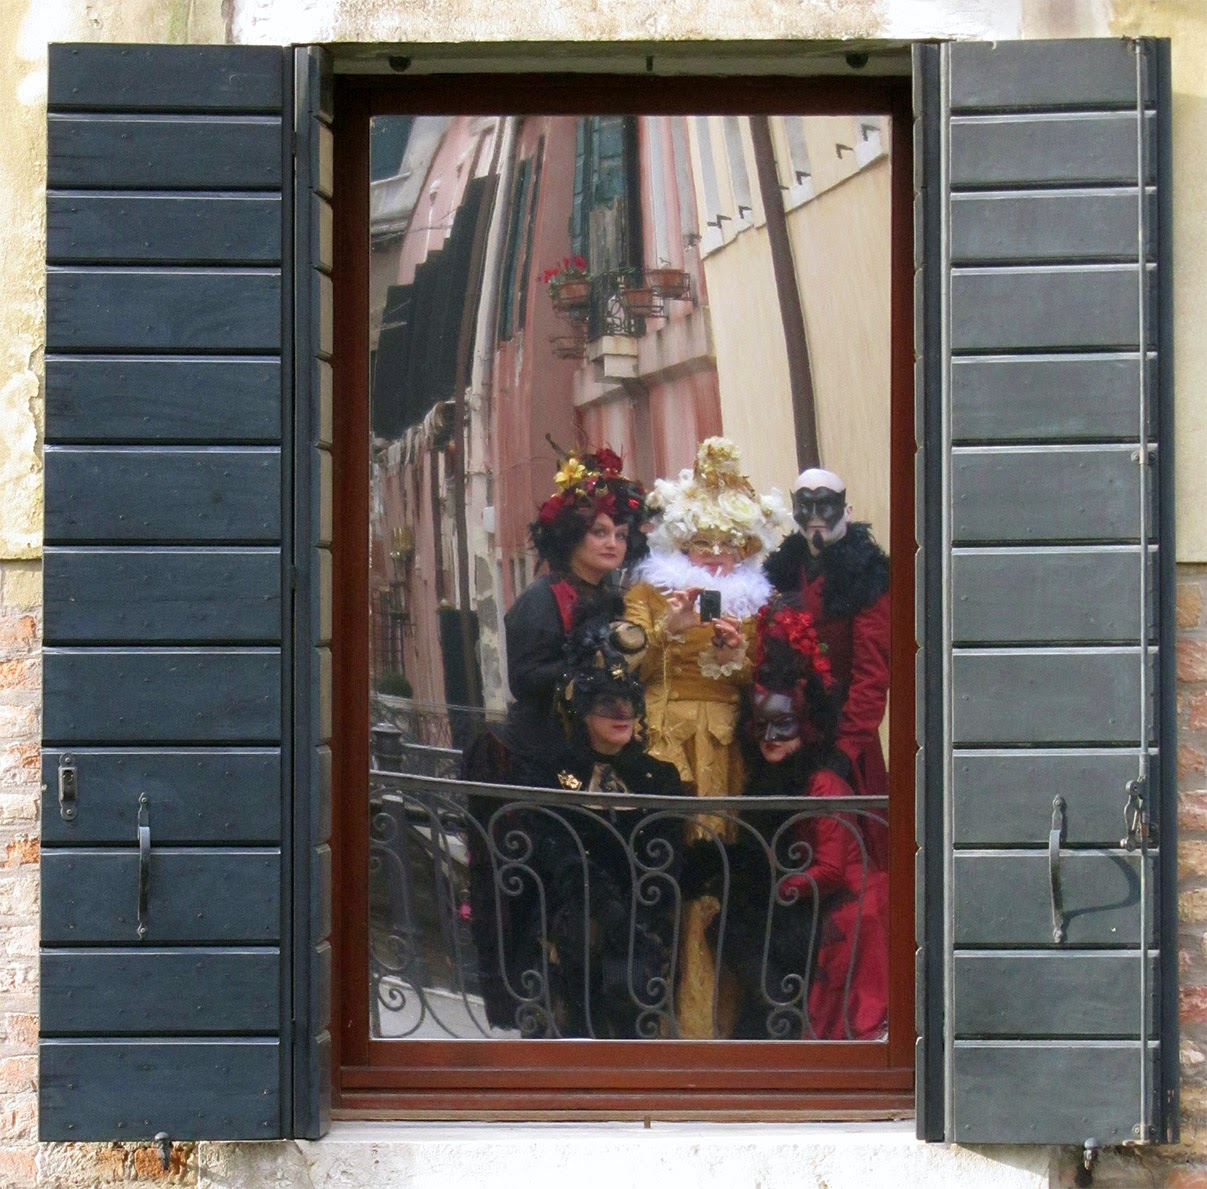 costumed us reflected in window